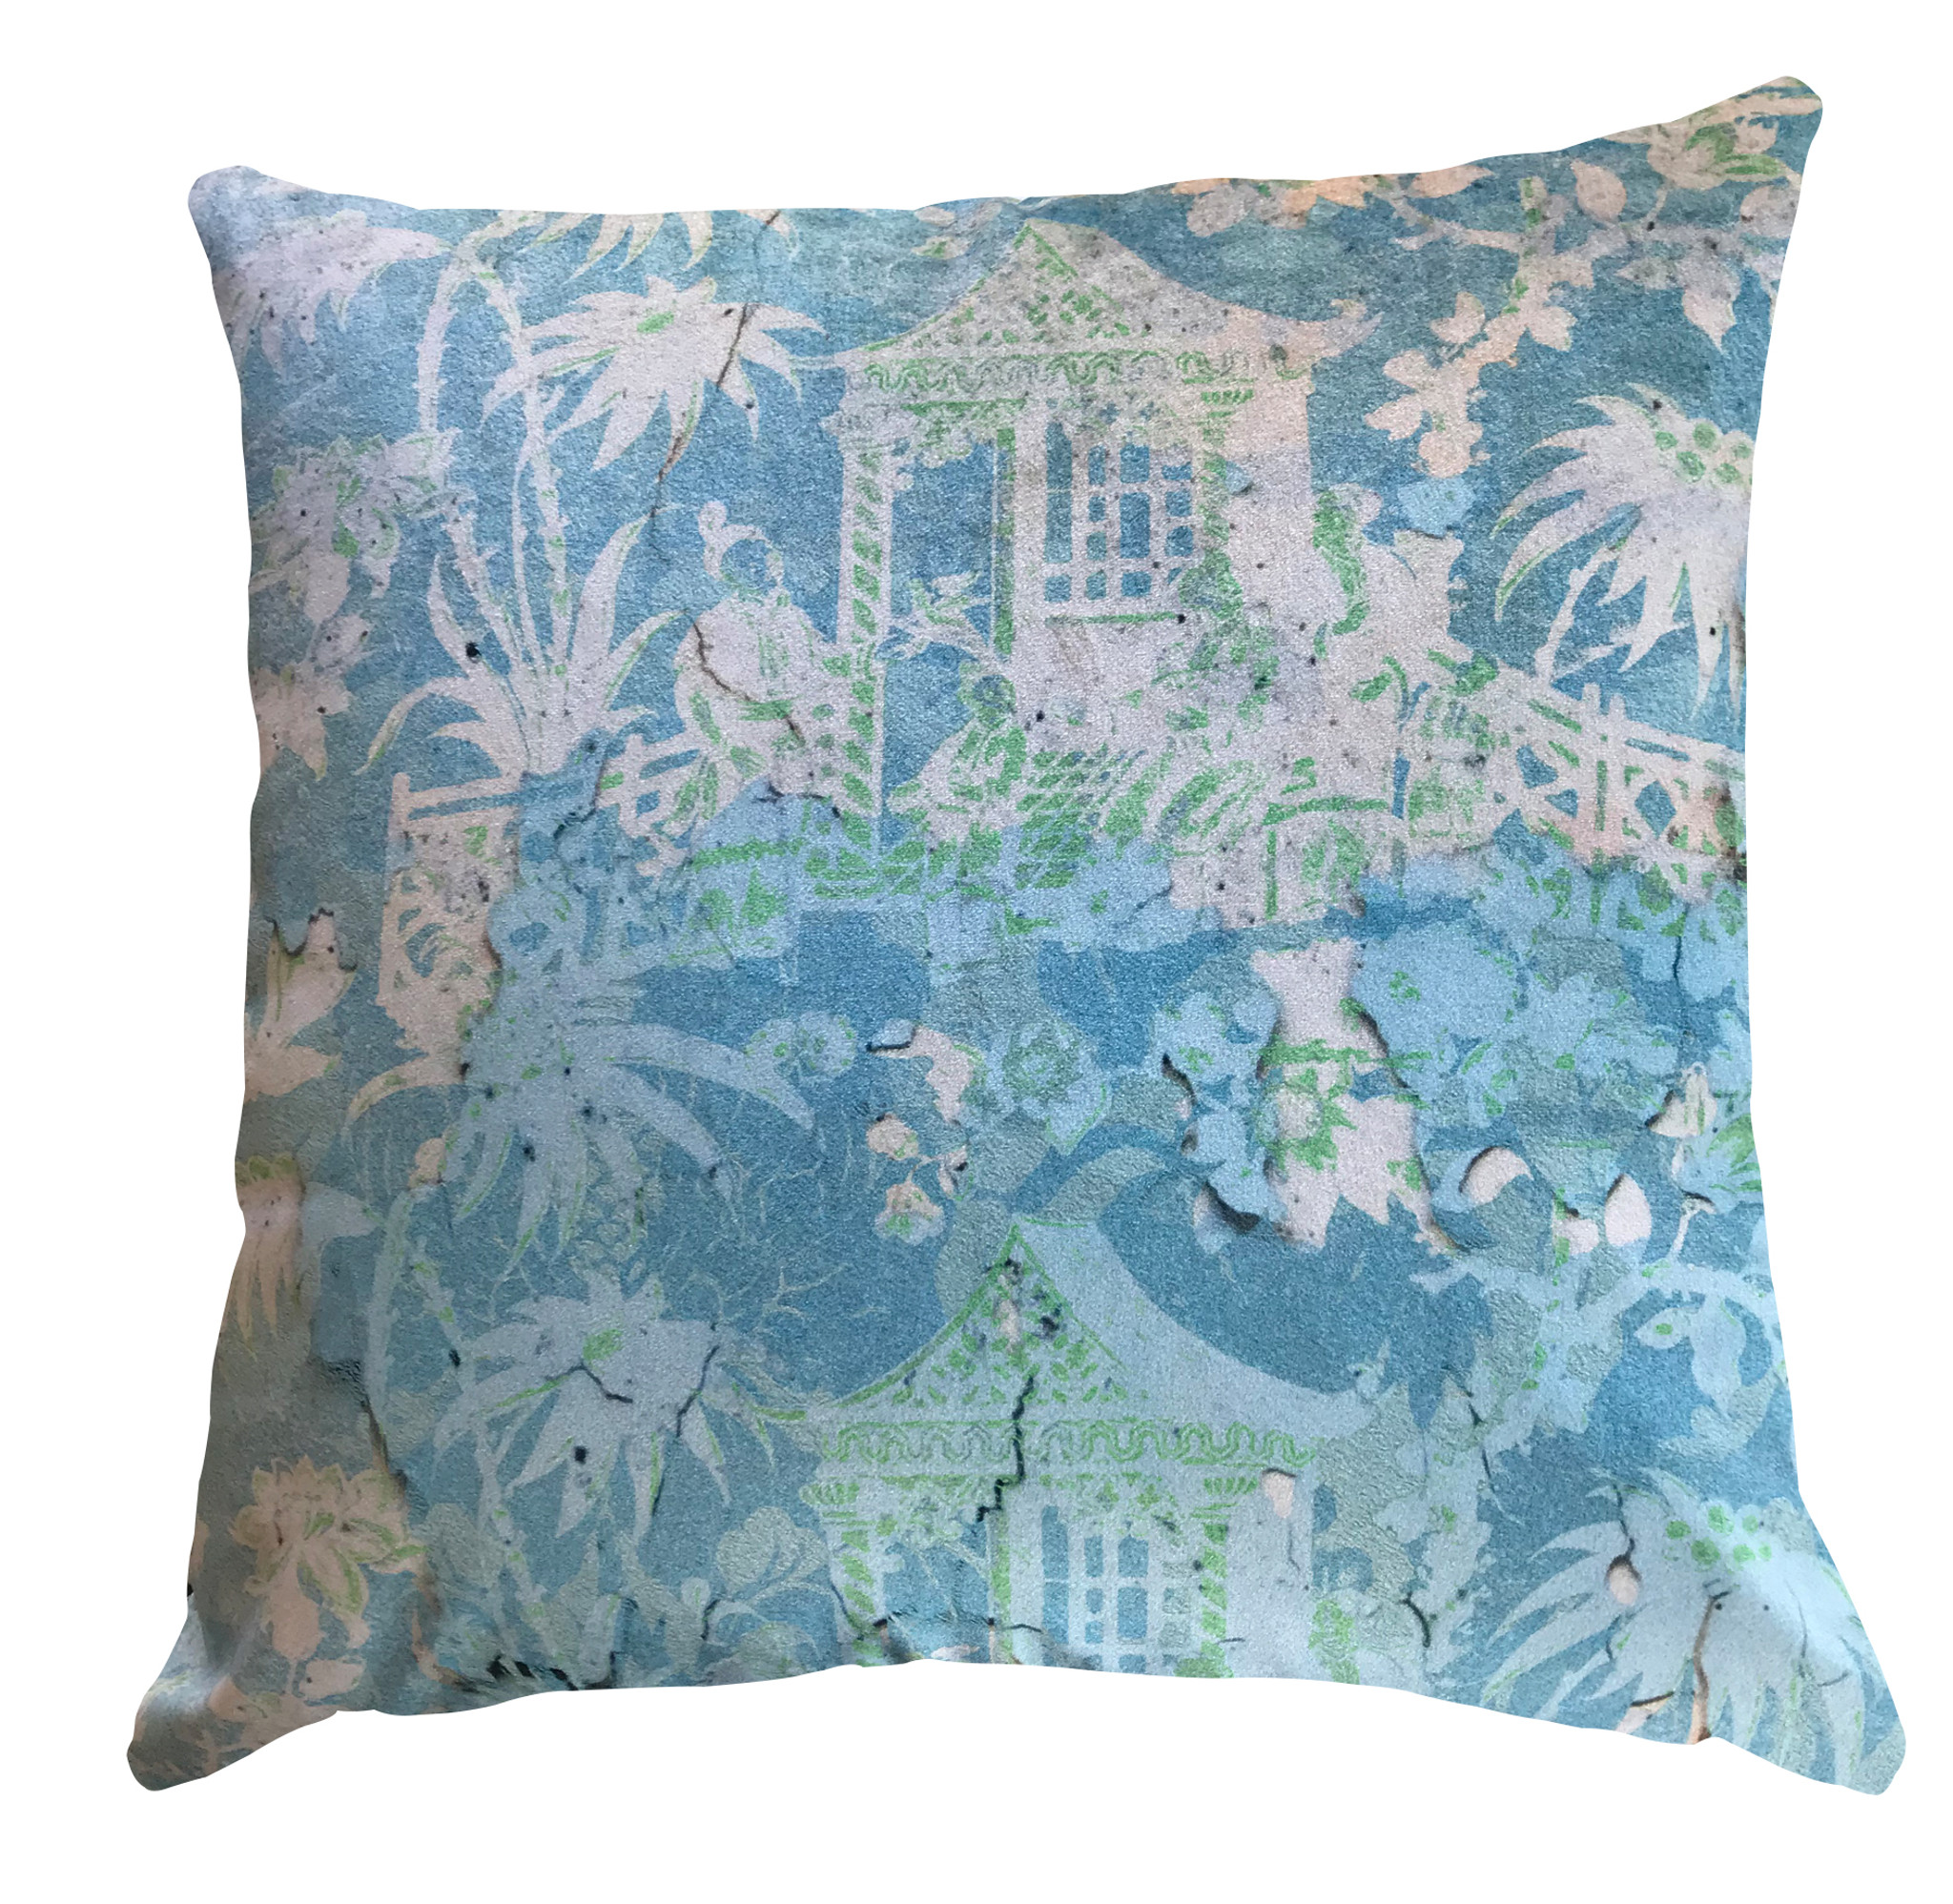 Cushion Cover - Chinoiserie - Enchanted Garden - Fading Blue